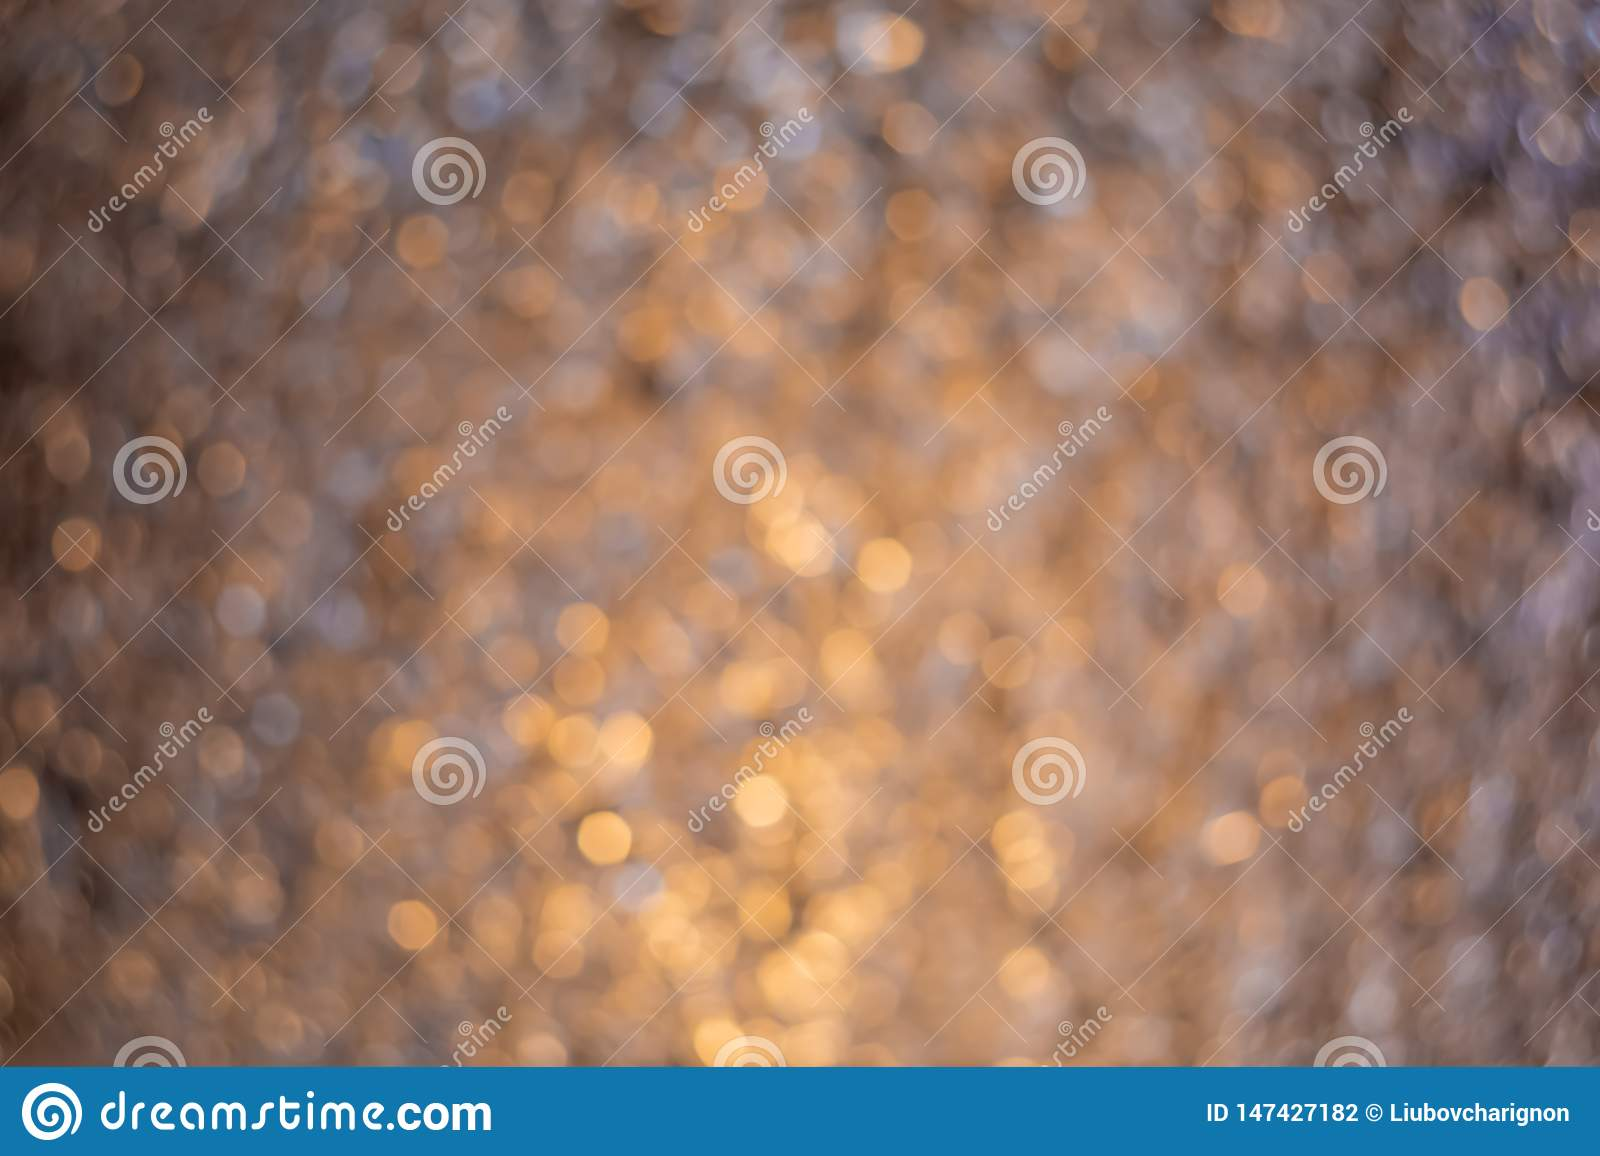 Blurry background. Gradient with dark silver crumpled foil. Blur colorful texture with bokeh. Art photography.